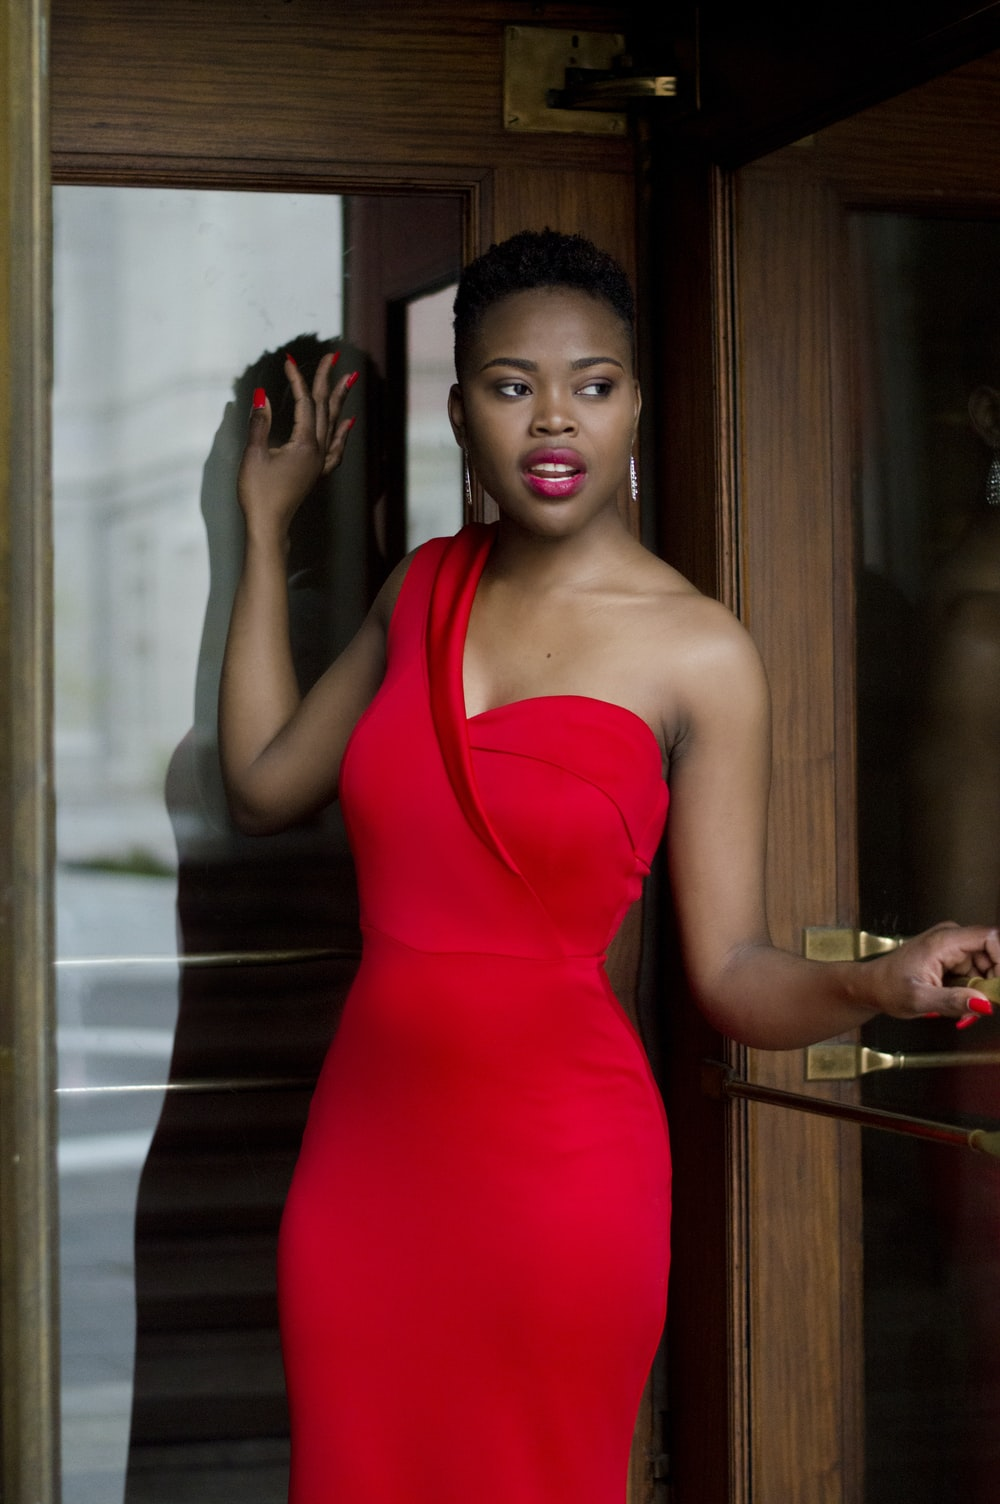 woman wearing red bodycon dress holding glass door